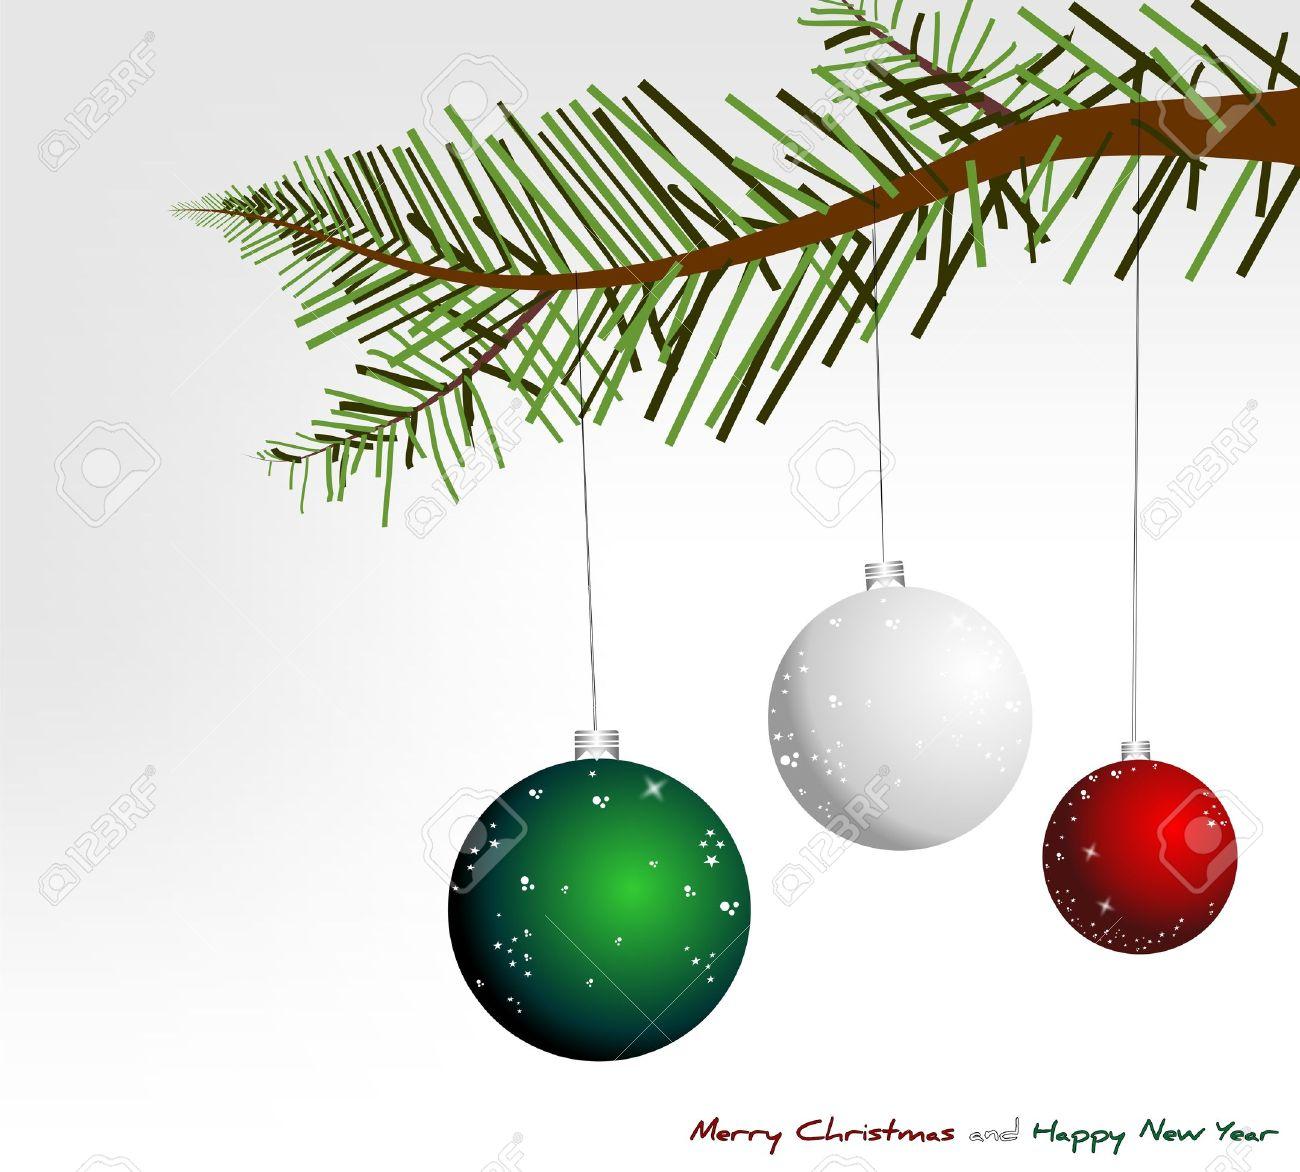 Italian Christmas Background Royalty Free Cliparts, Vectors, And ...